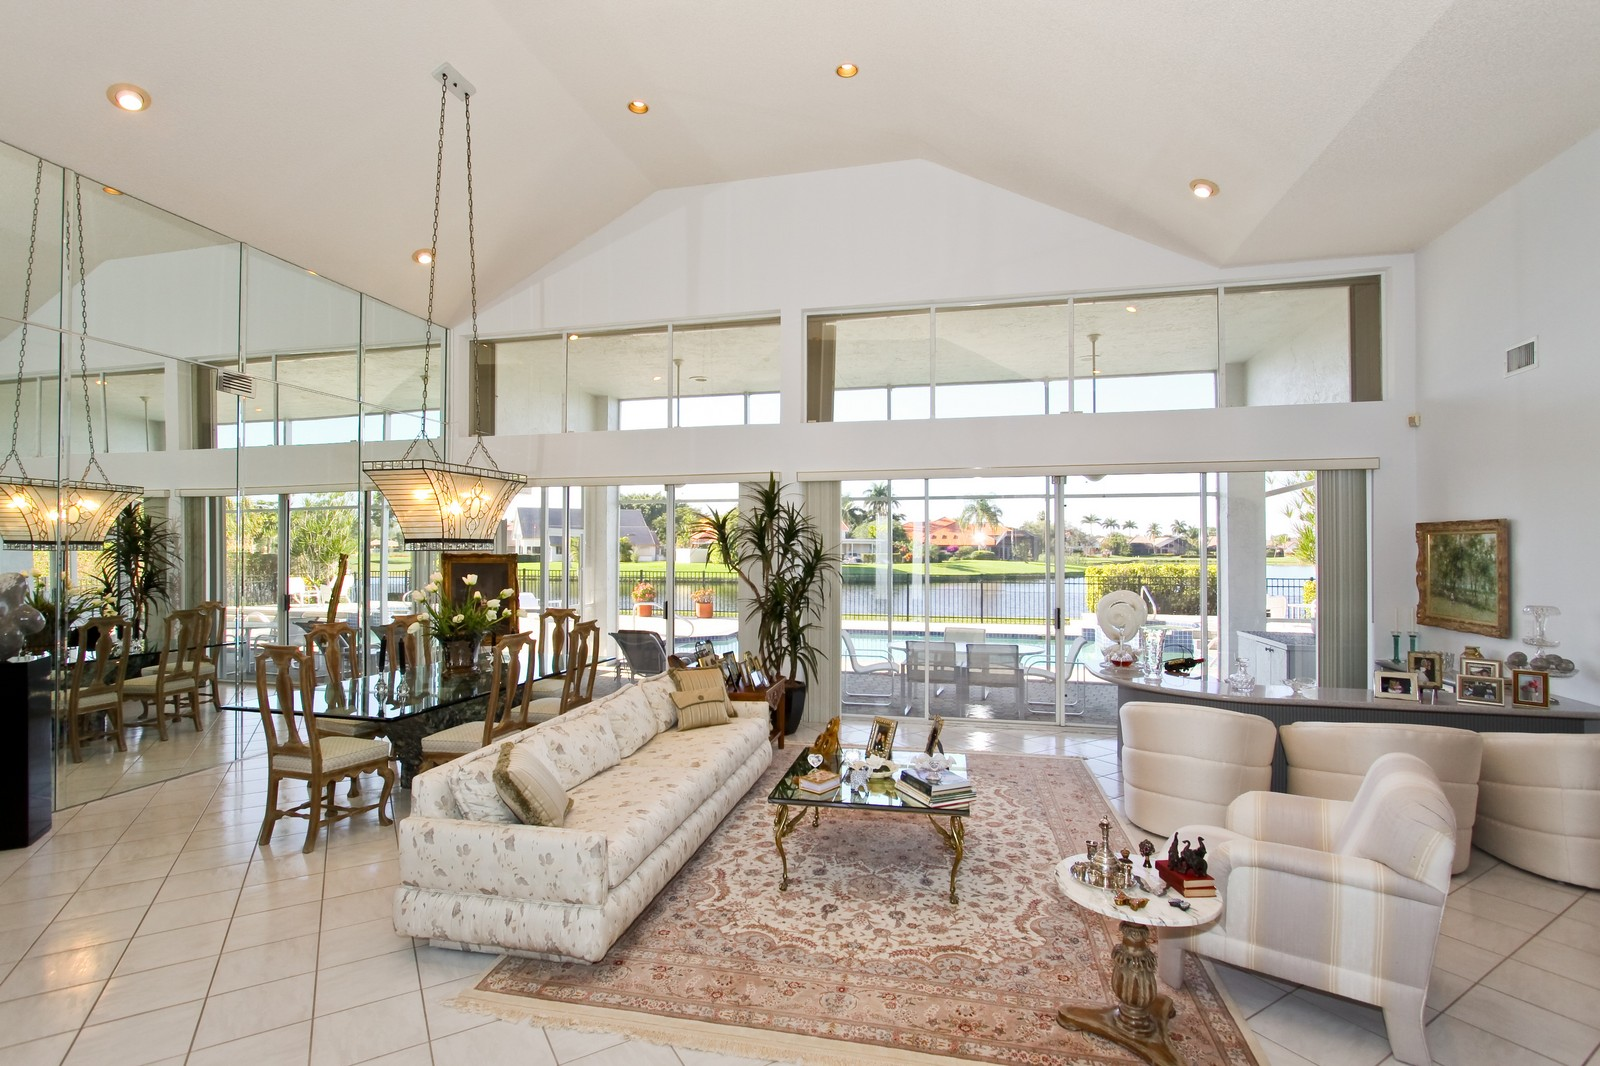 Real Estate Photography - 17799 Heather Ridge, Boca Raton, FL, 33498 - Living Room / Dining Room